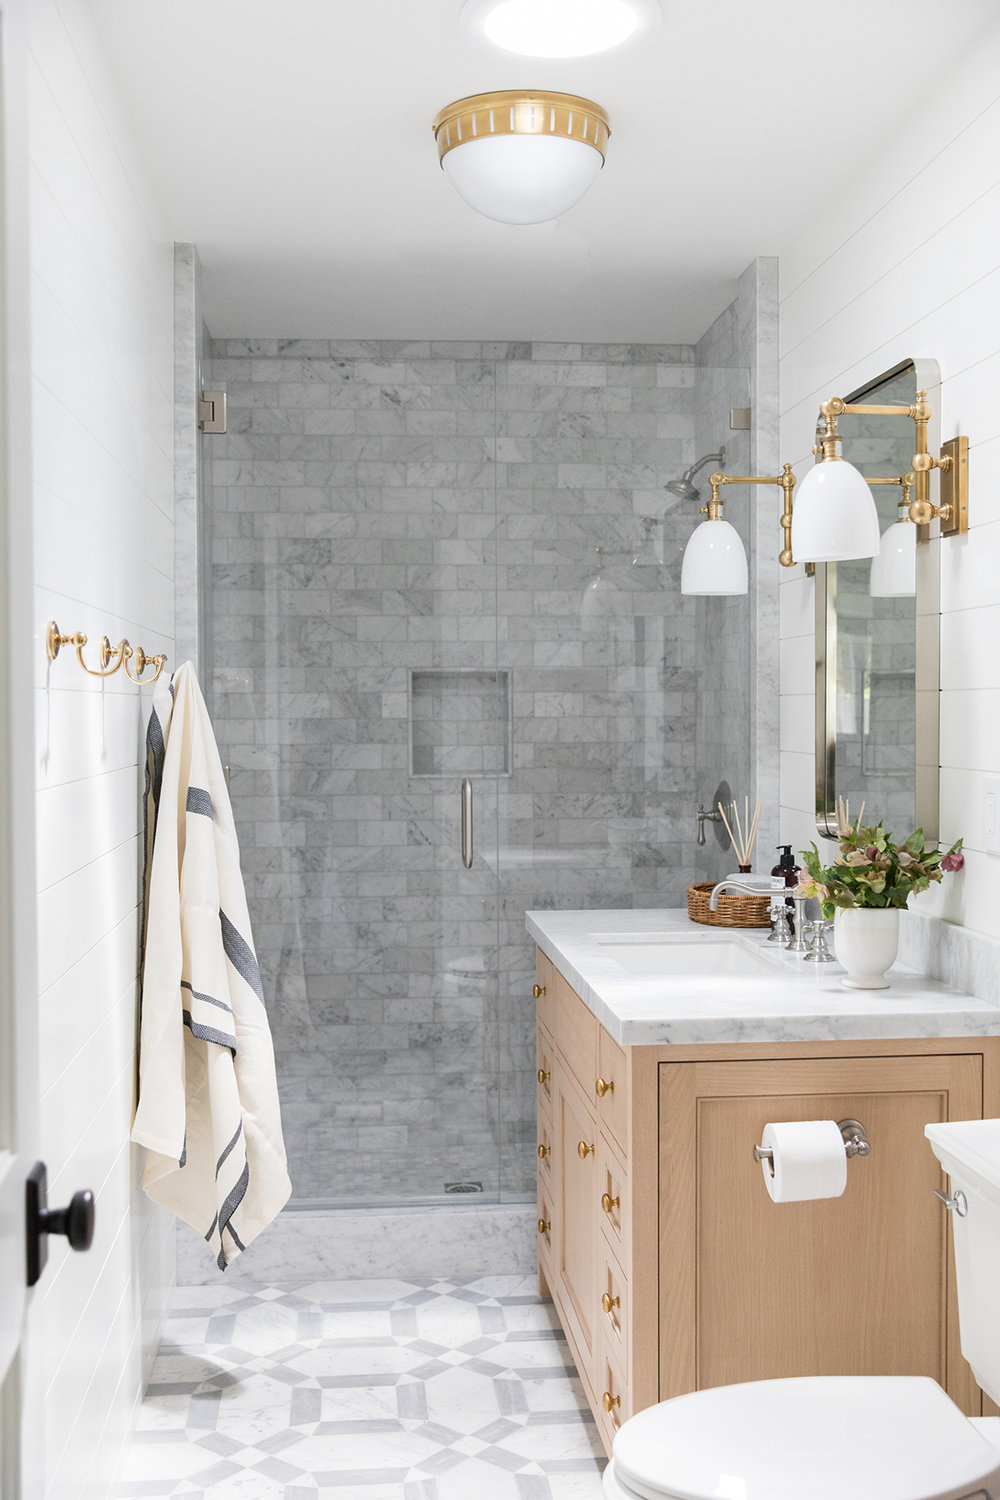 Bathroom+with+marbled+tile,+countertops,+marble+showe,